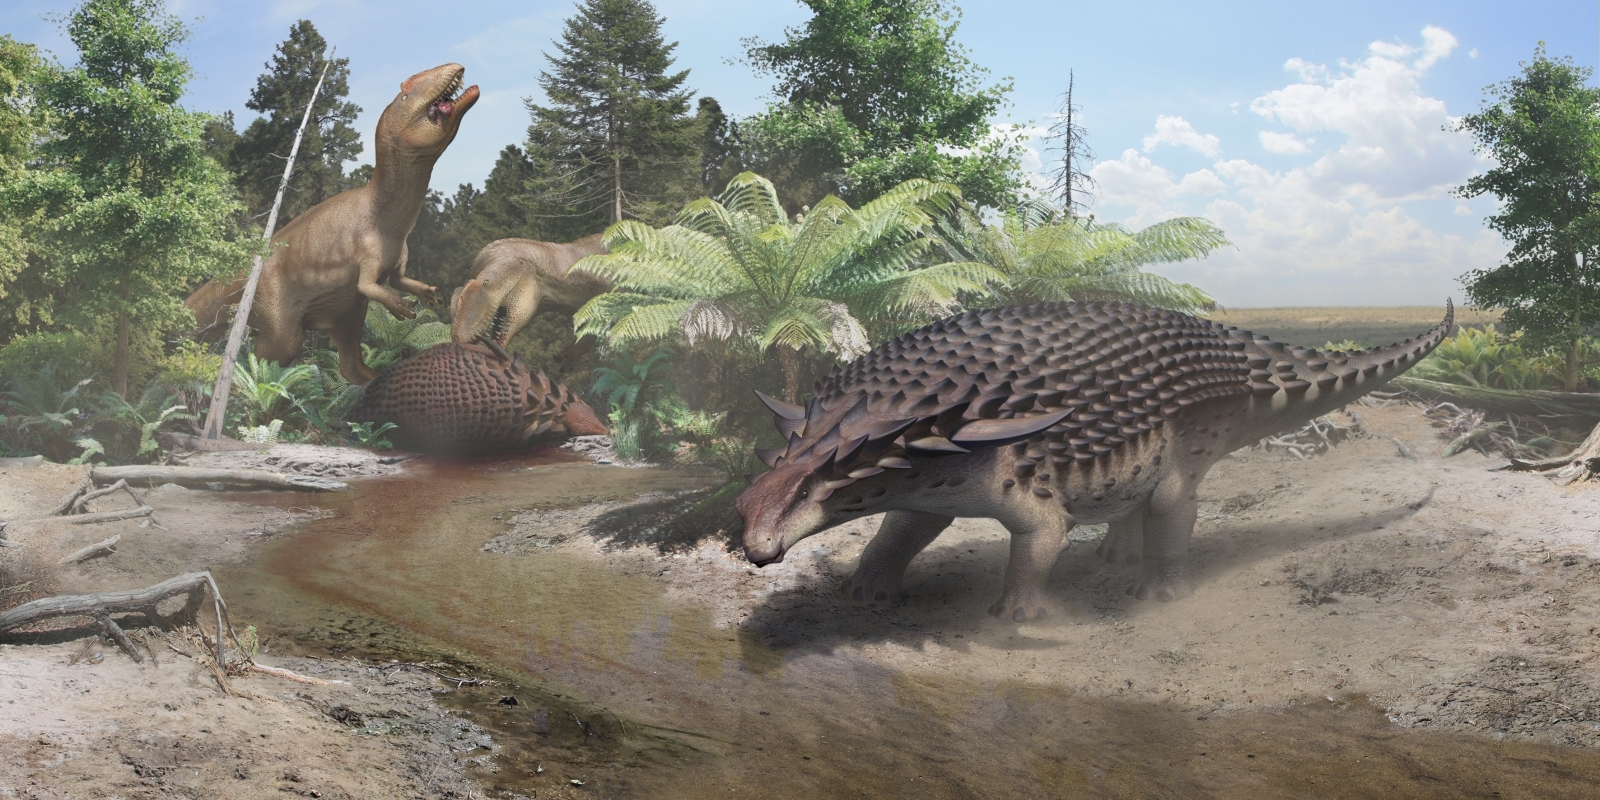 Well-preserved dinosaur reveals camouflage